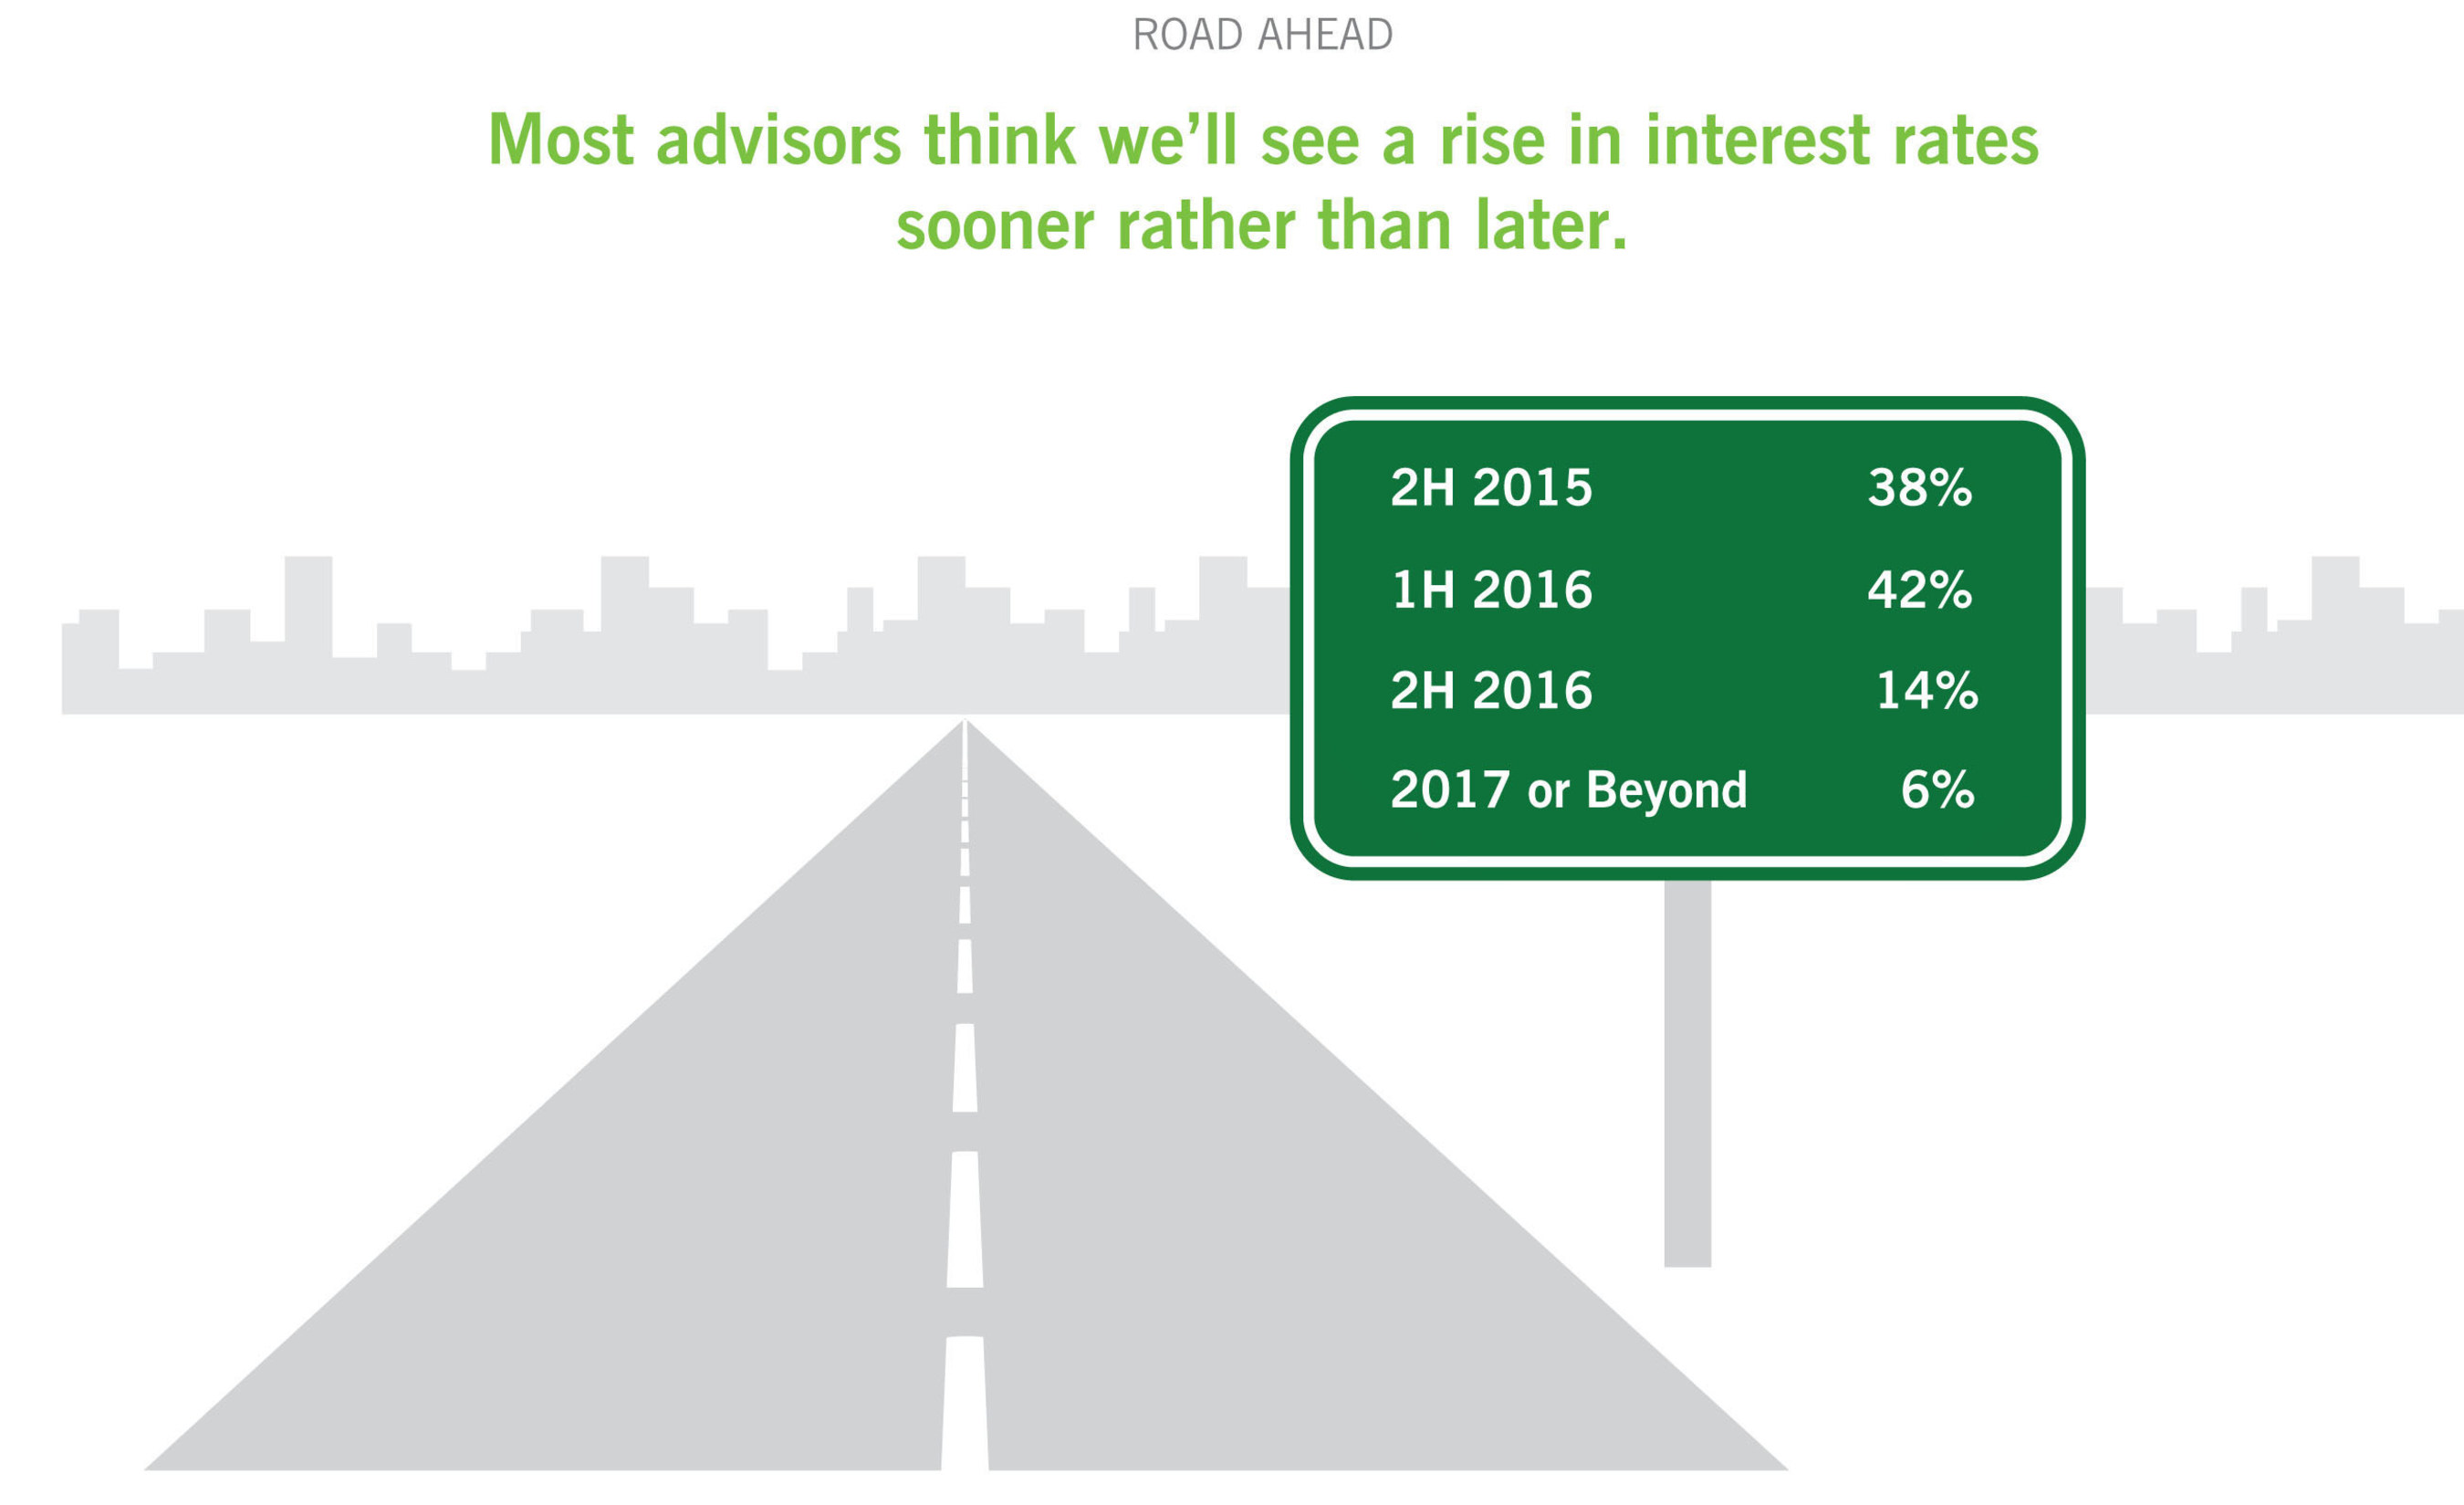 80% of advisors believe we will see a rate increase in 2015 or the first half of 2016.